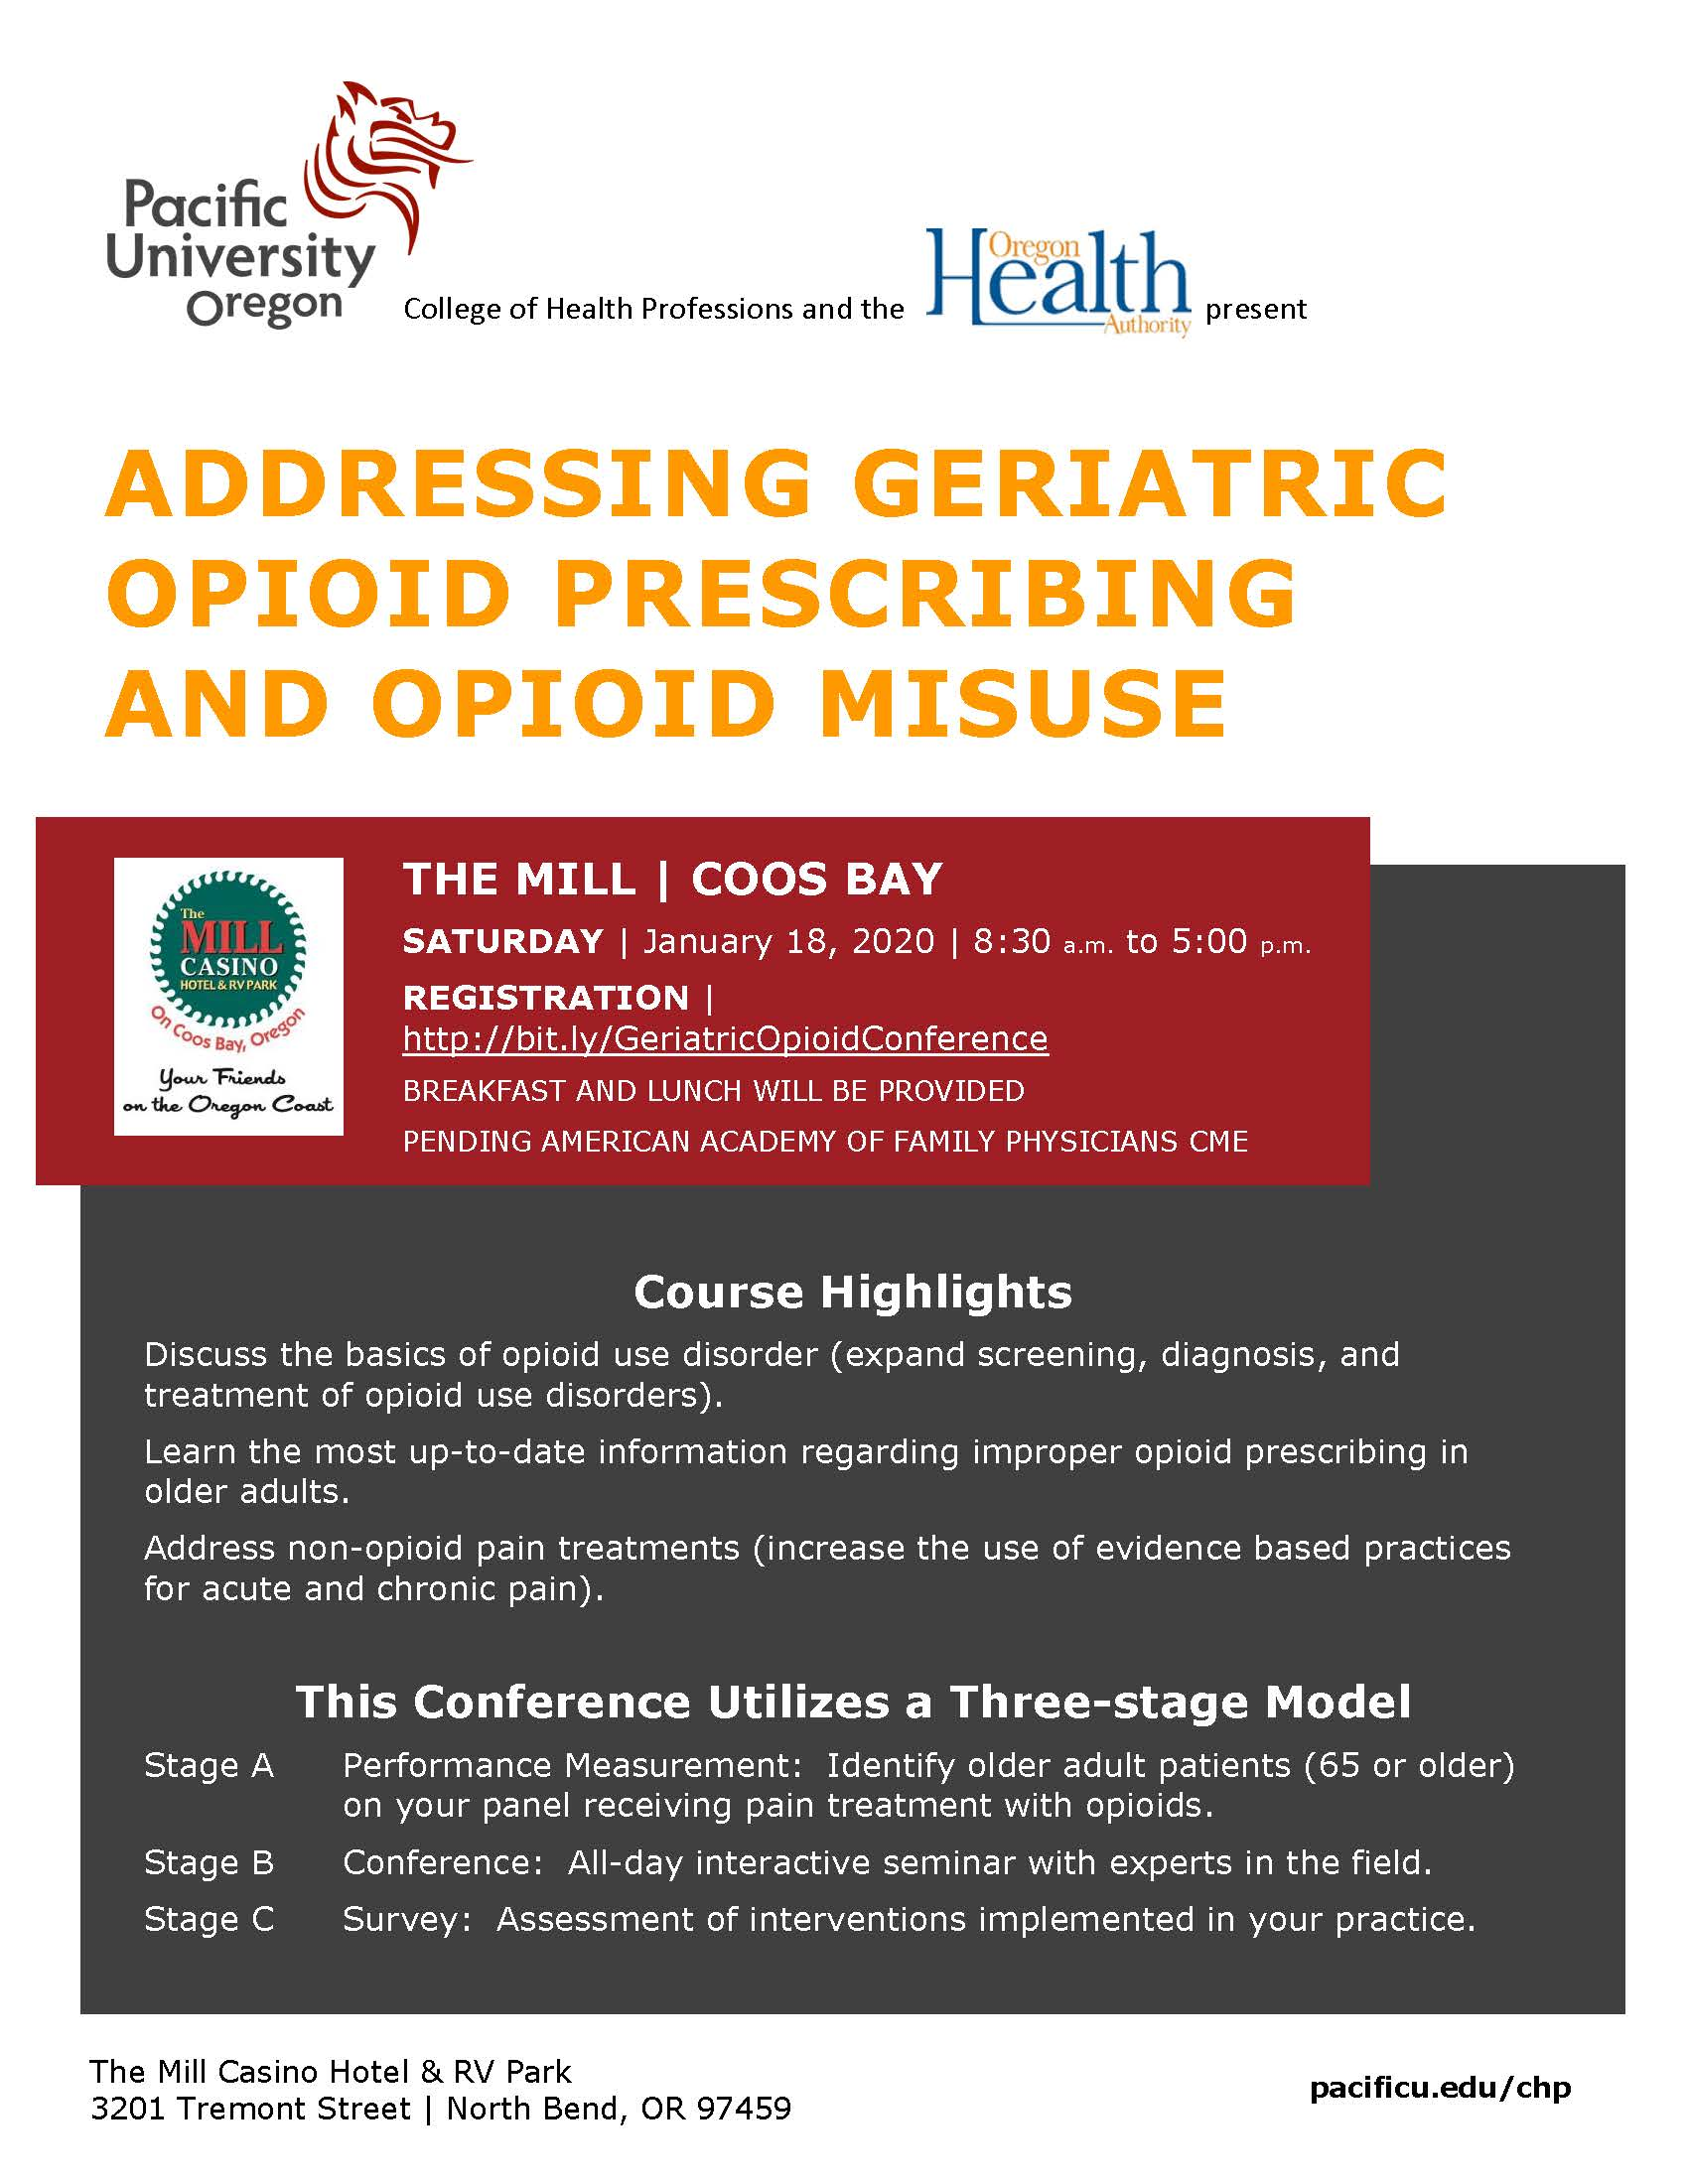 Course Highlights Discuss the basics of opioid use disorder (expand screening, diagnosis, and treatment of opioid use disorders). Learn the most up-to-date information regarding improper opioid prescribing in older adults. Address non-opioid pain treatments (increase the use of evidence based practices for acute and chronic pain). This Conference Utilizes a Three-stage Model Stage A Performance Measurement: Identify older adult patients (65 or older) on your panel receiving pain treatment with opioids. Stage B Conference: All-day interactive seminar with experts in the field. Stage C Survey: Assessment of interventions implemented in your practice.